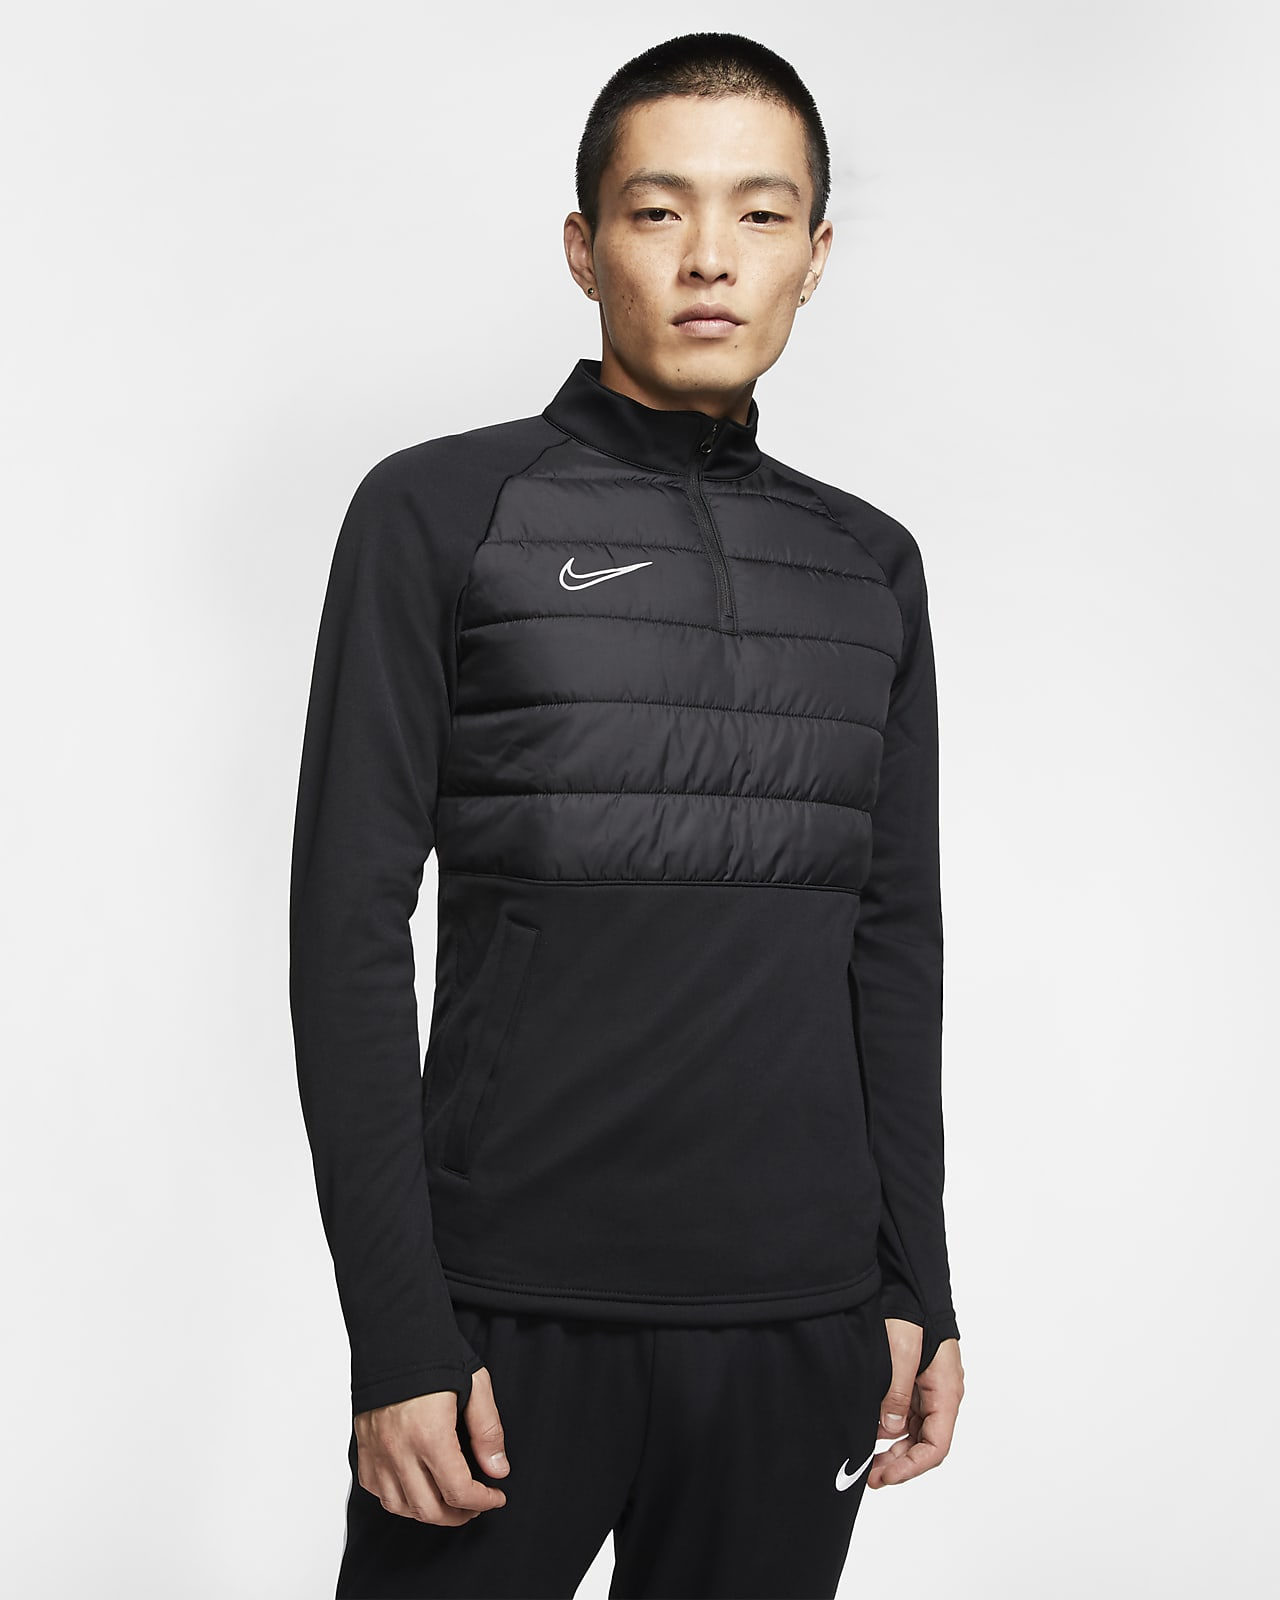 Haut d'entraînement de football Nike Dri-FIT Academy Winter Warrior pour Homme